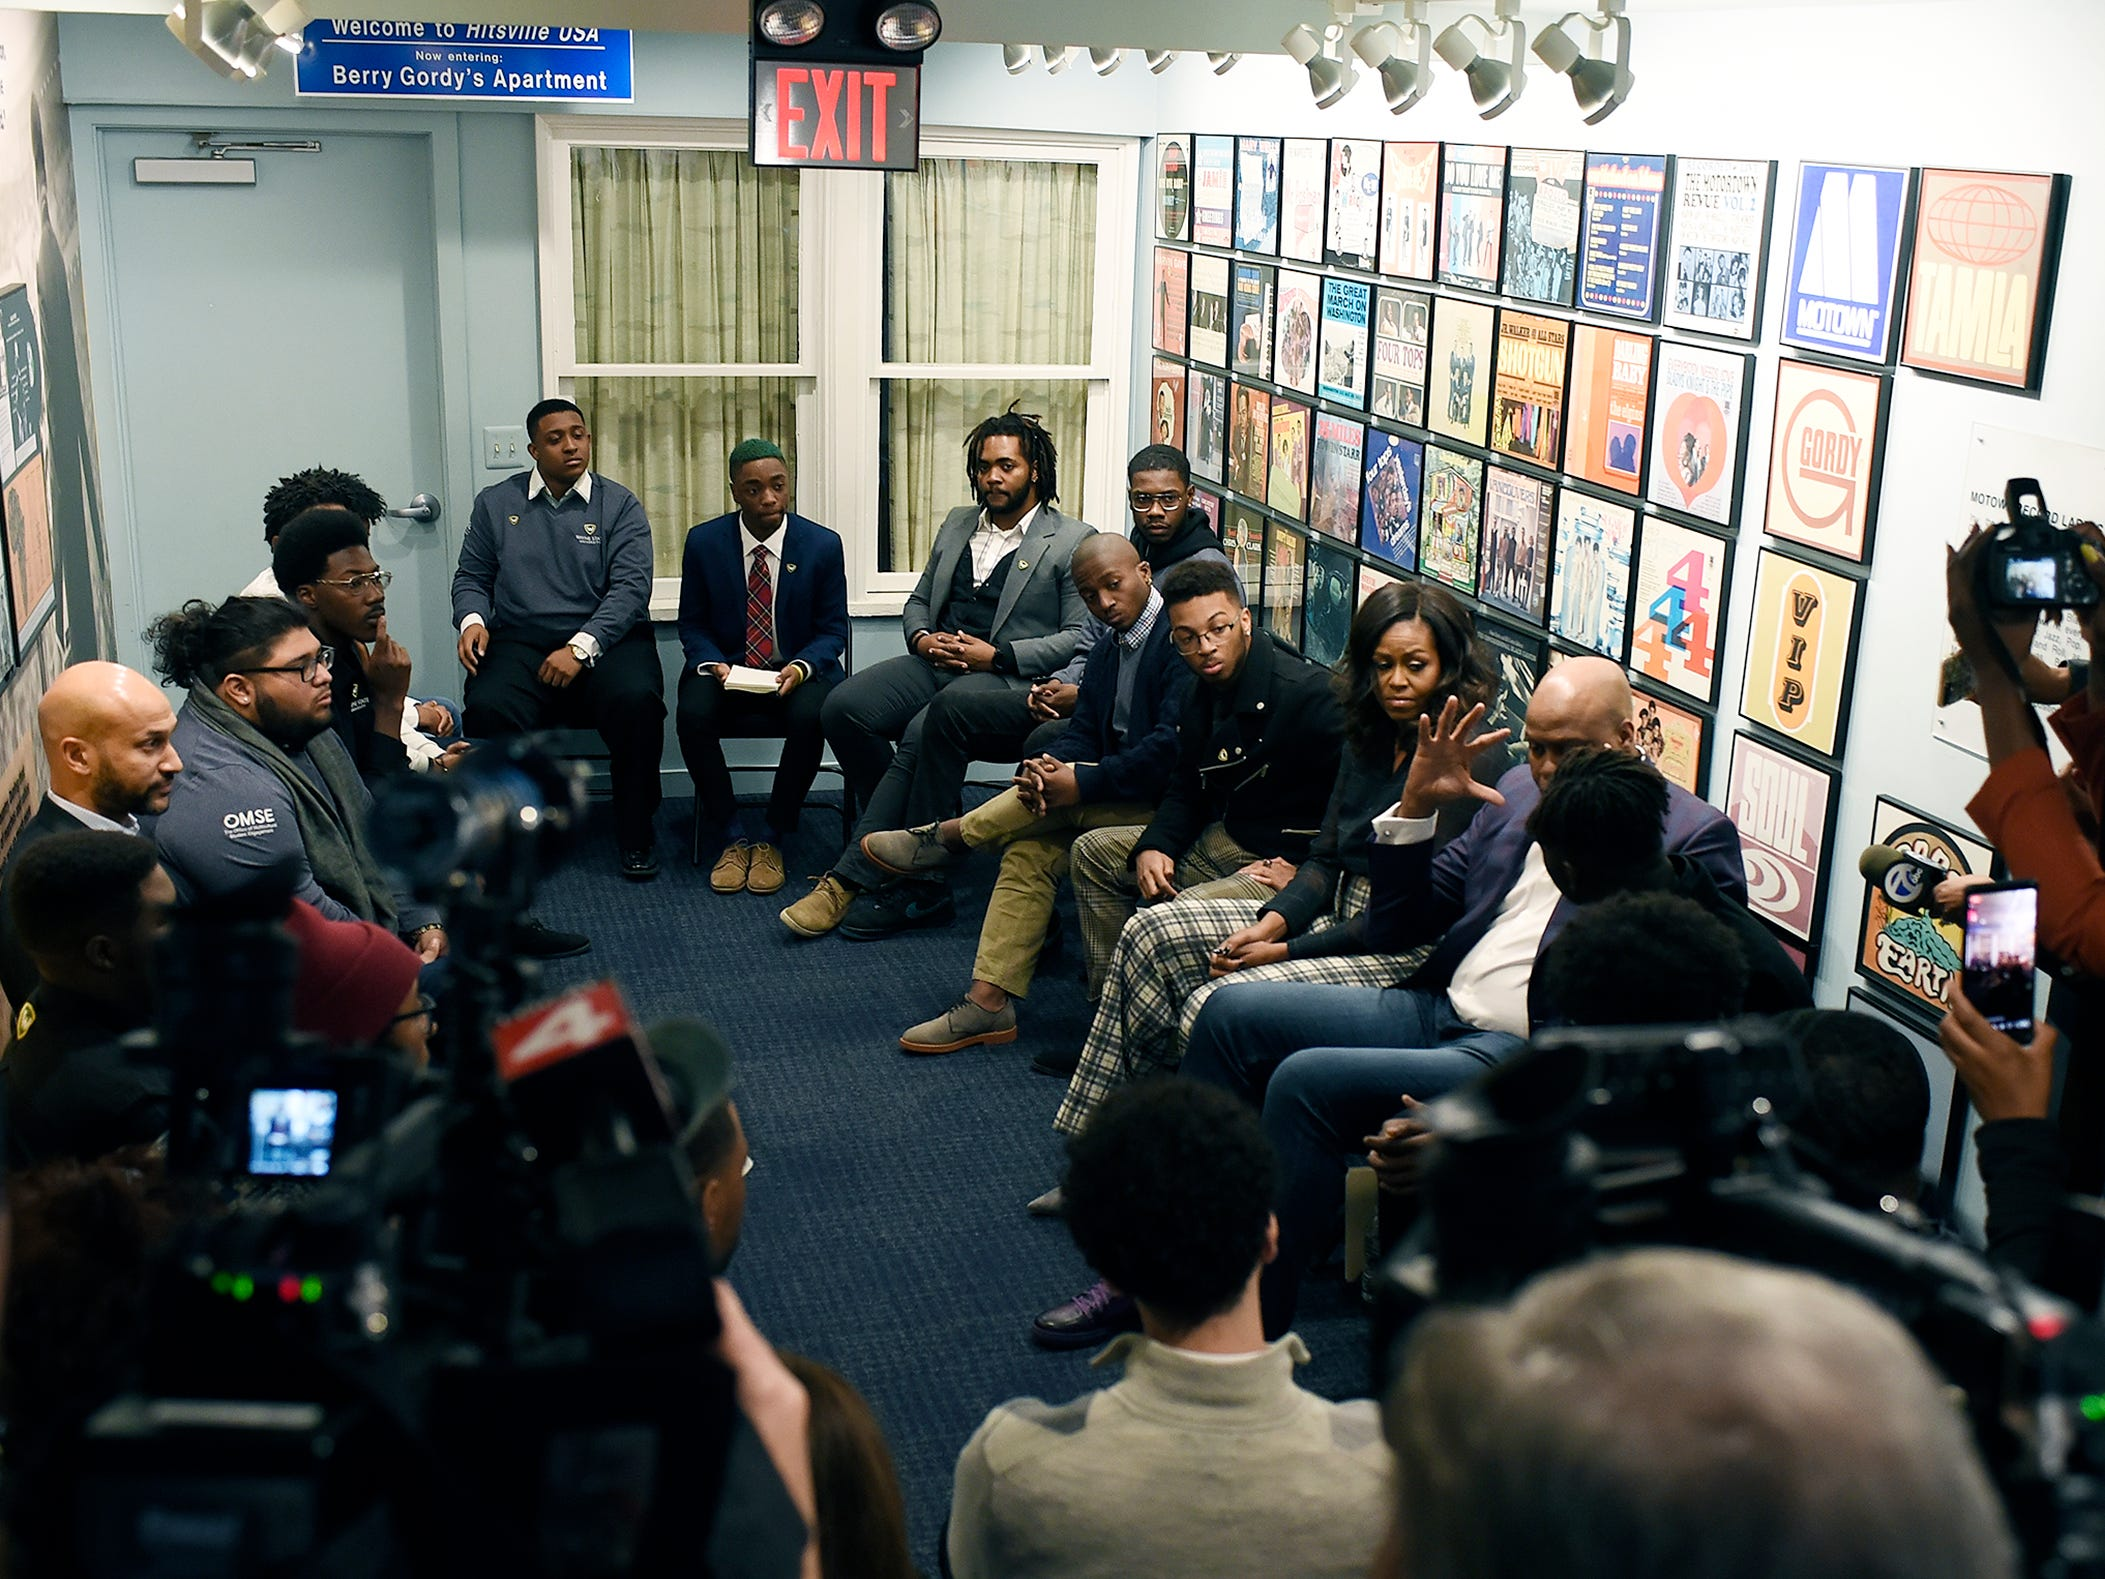 Michelle Obama, 2nd from right participates in a group discussion with students from Wayne St. University.